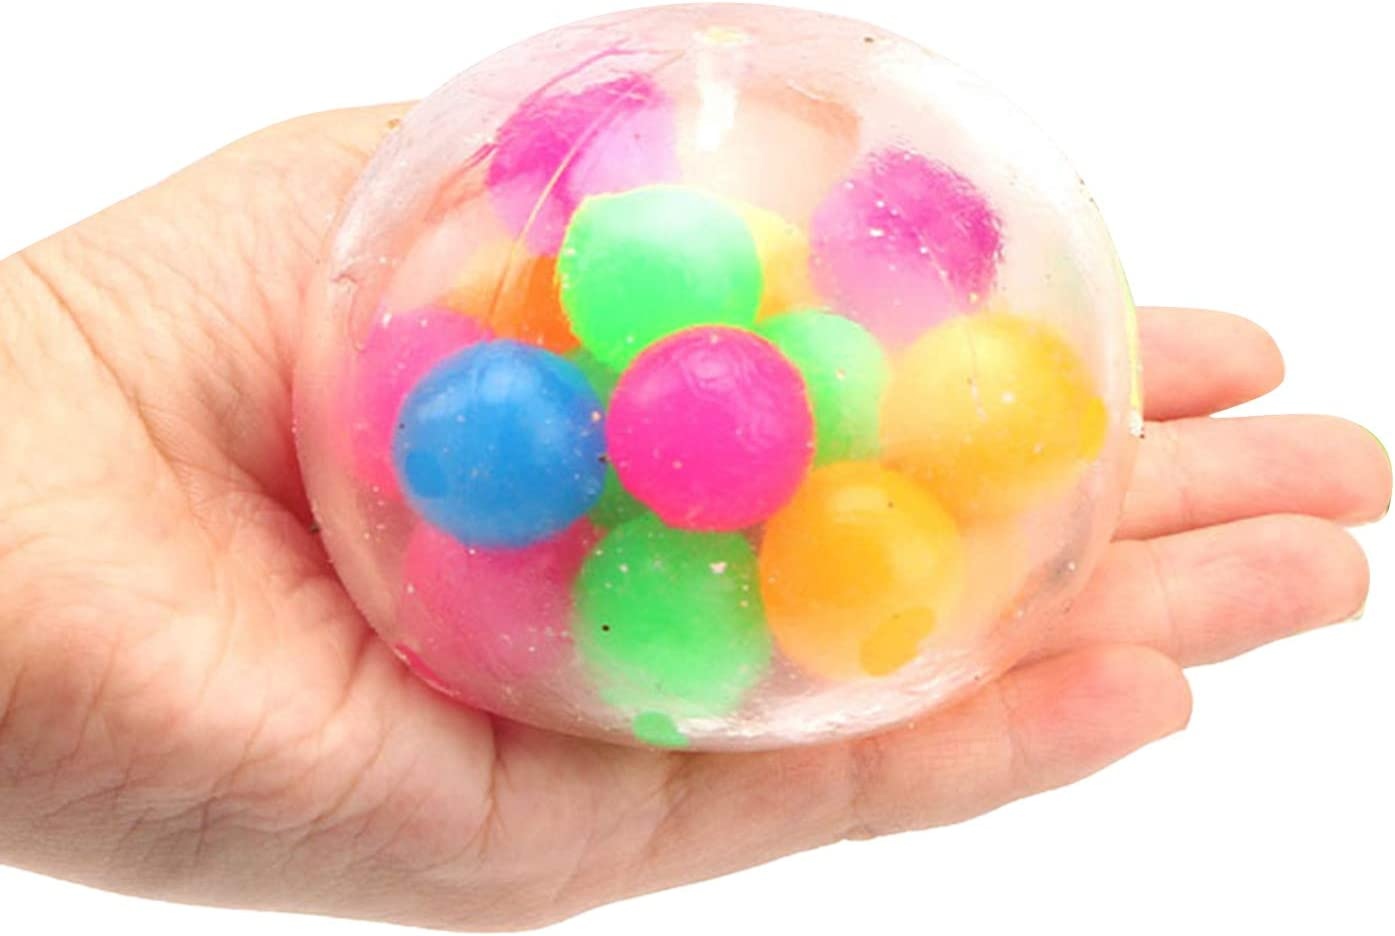 Squishy Stress Relief Balls Toy Squeezing Filled with Water Beads ADHD OCD Anxiety Relieve Novelty Fidget Toy Colorful, d#